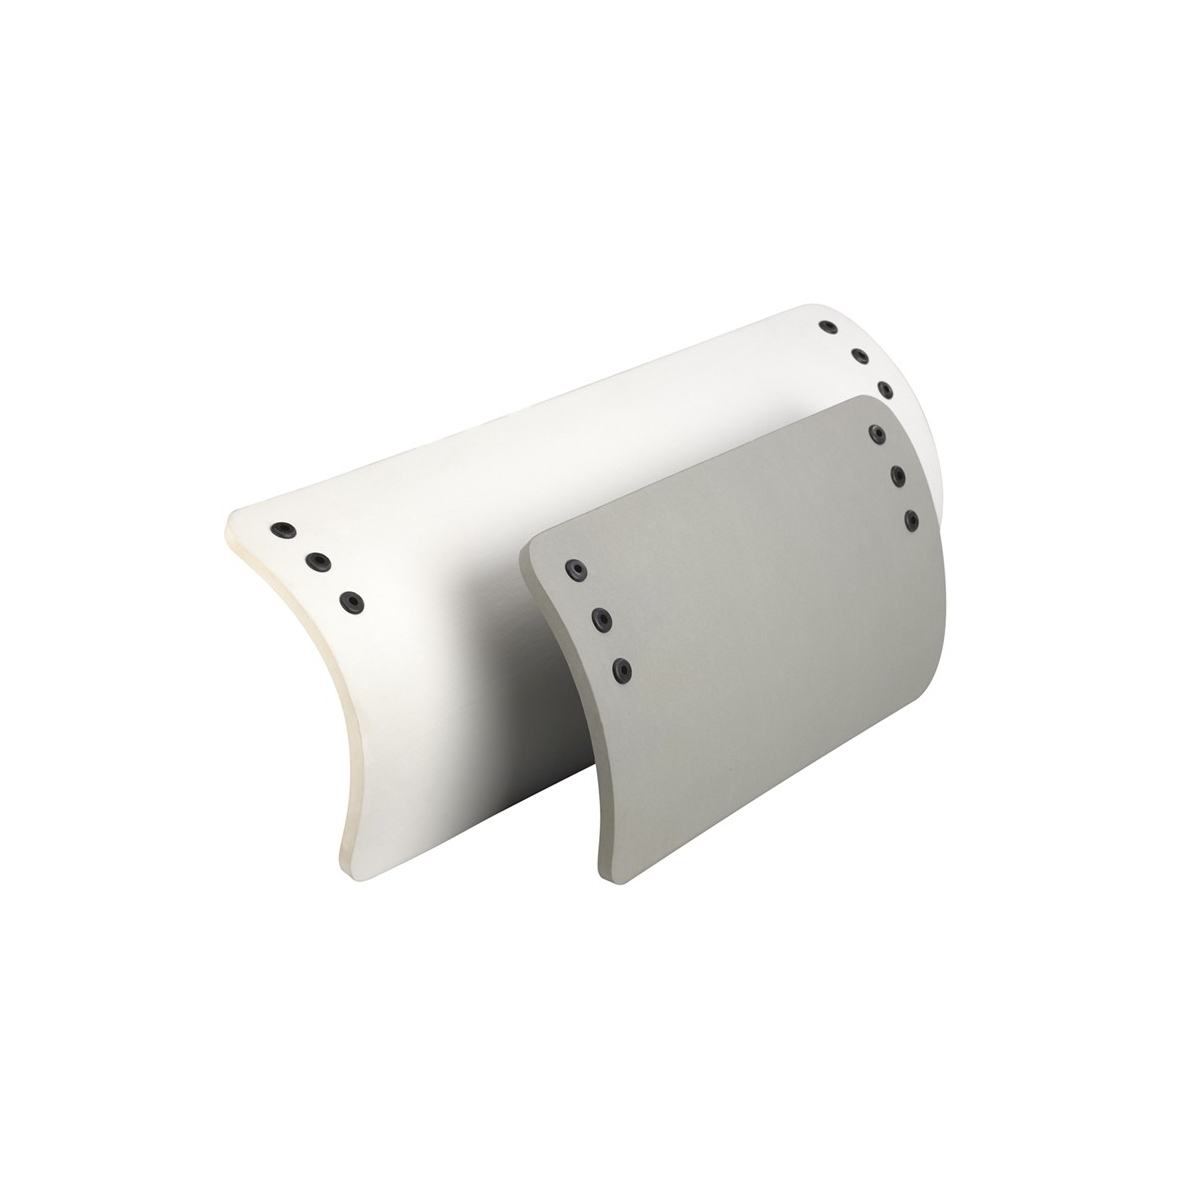 Fenders for RIBs